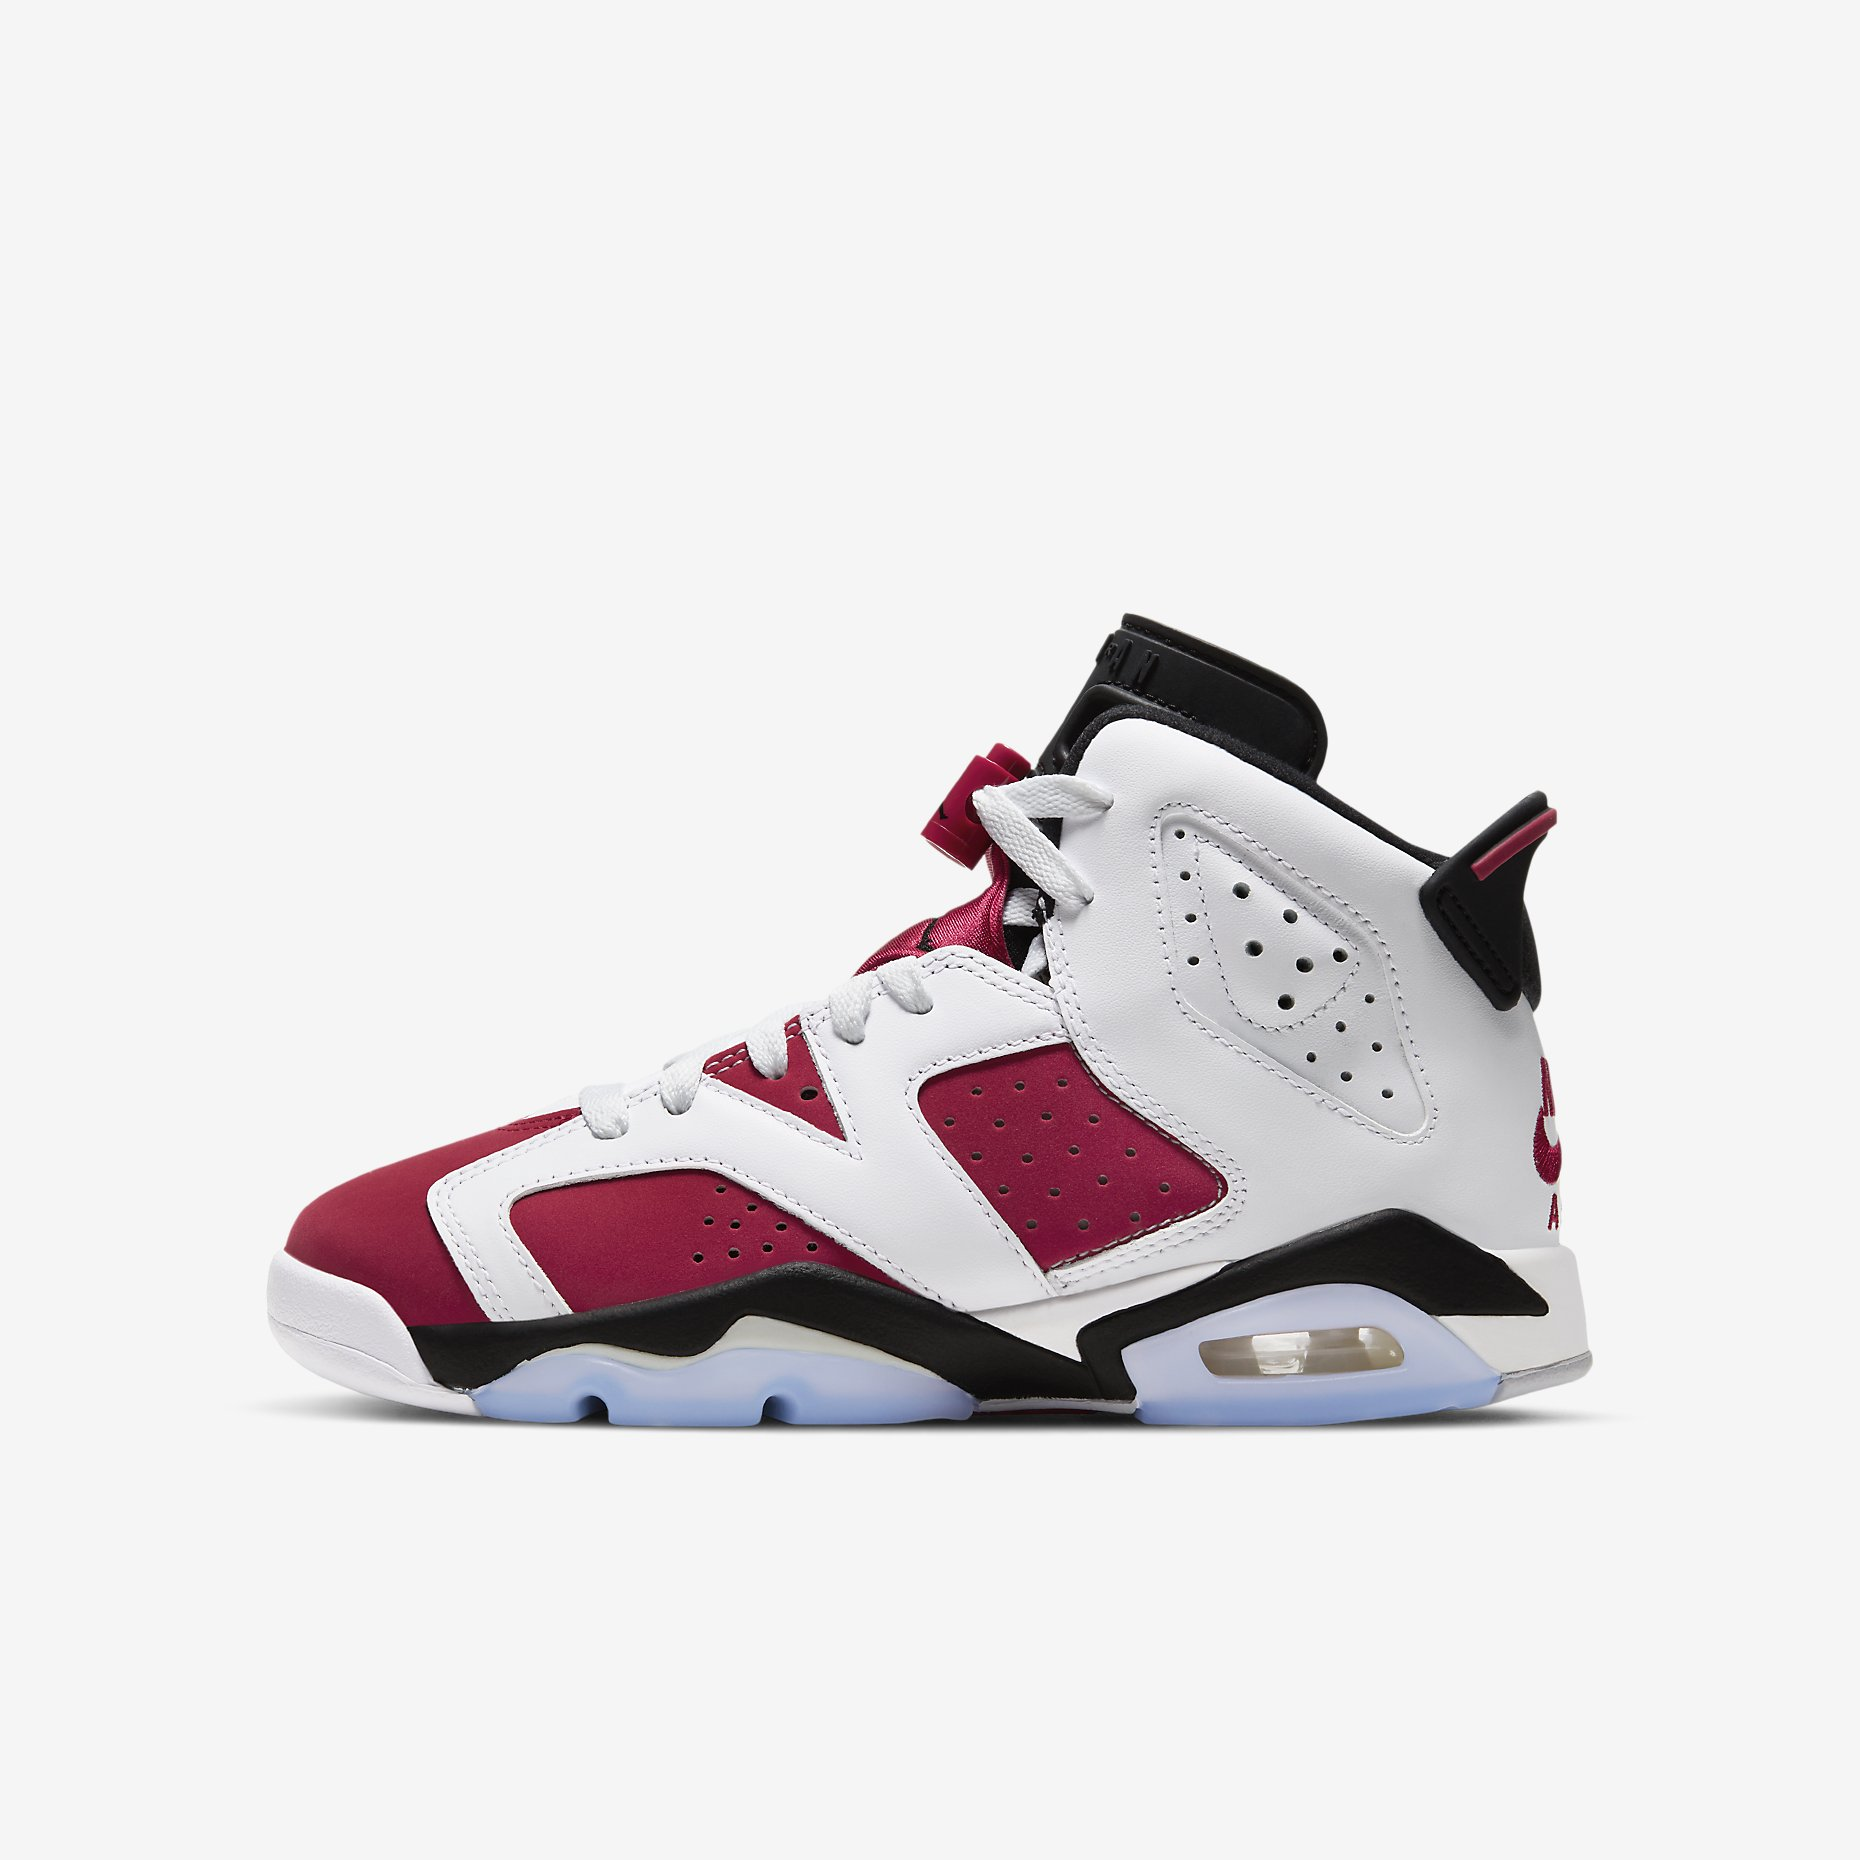 Air Jordan 6 Retro GS 'Carmine' 2021}